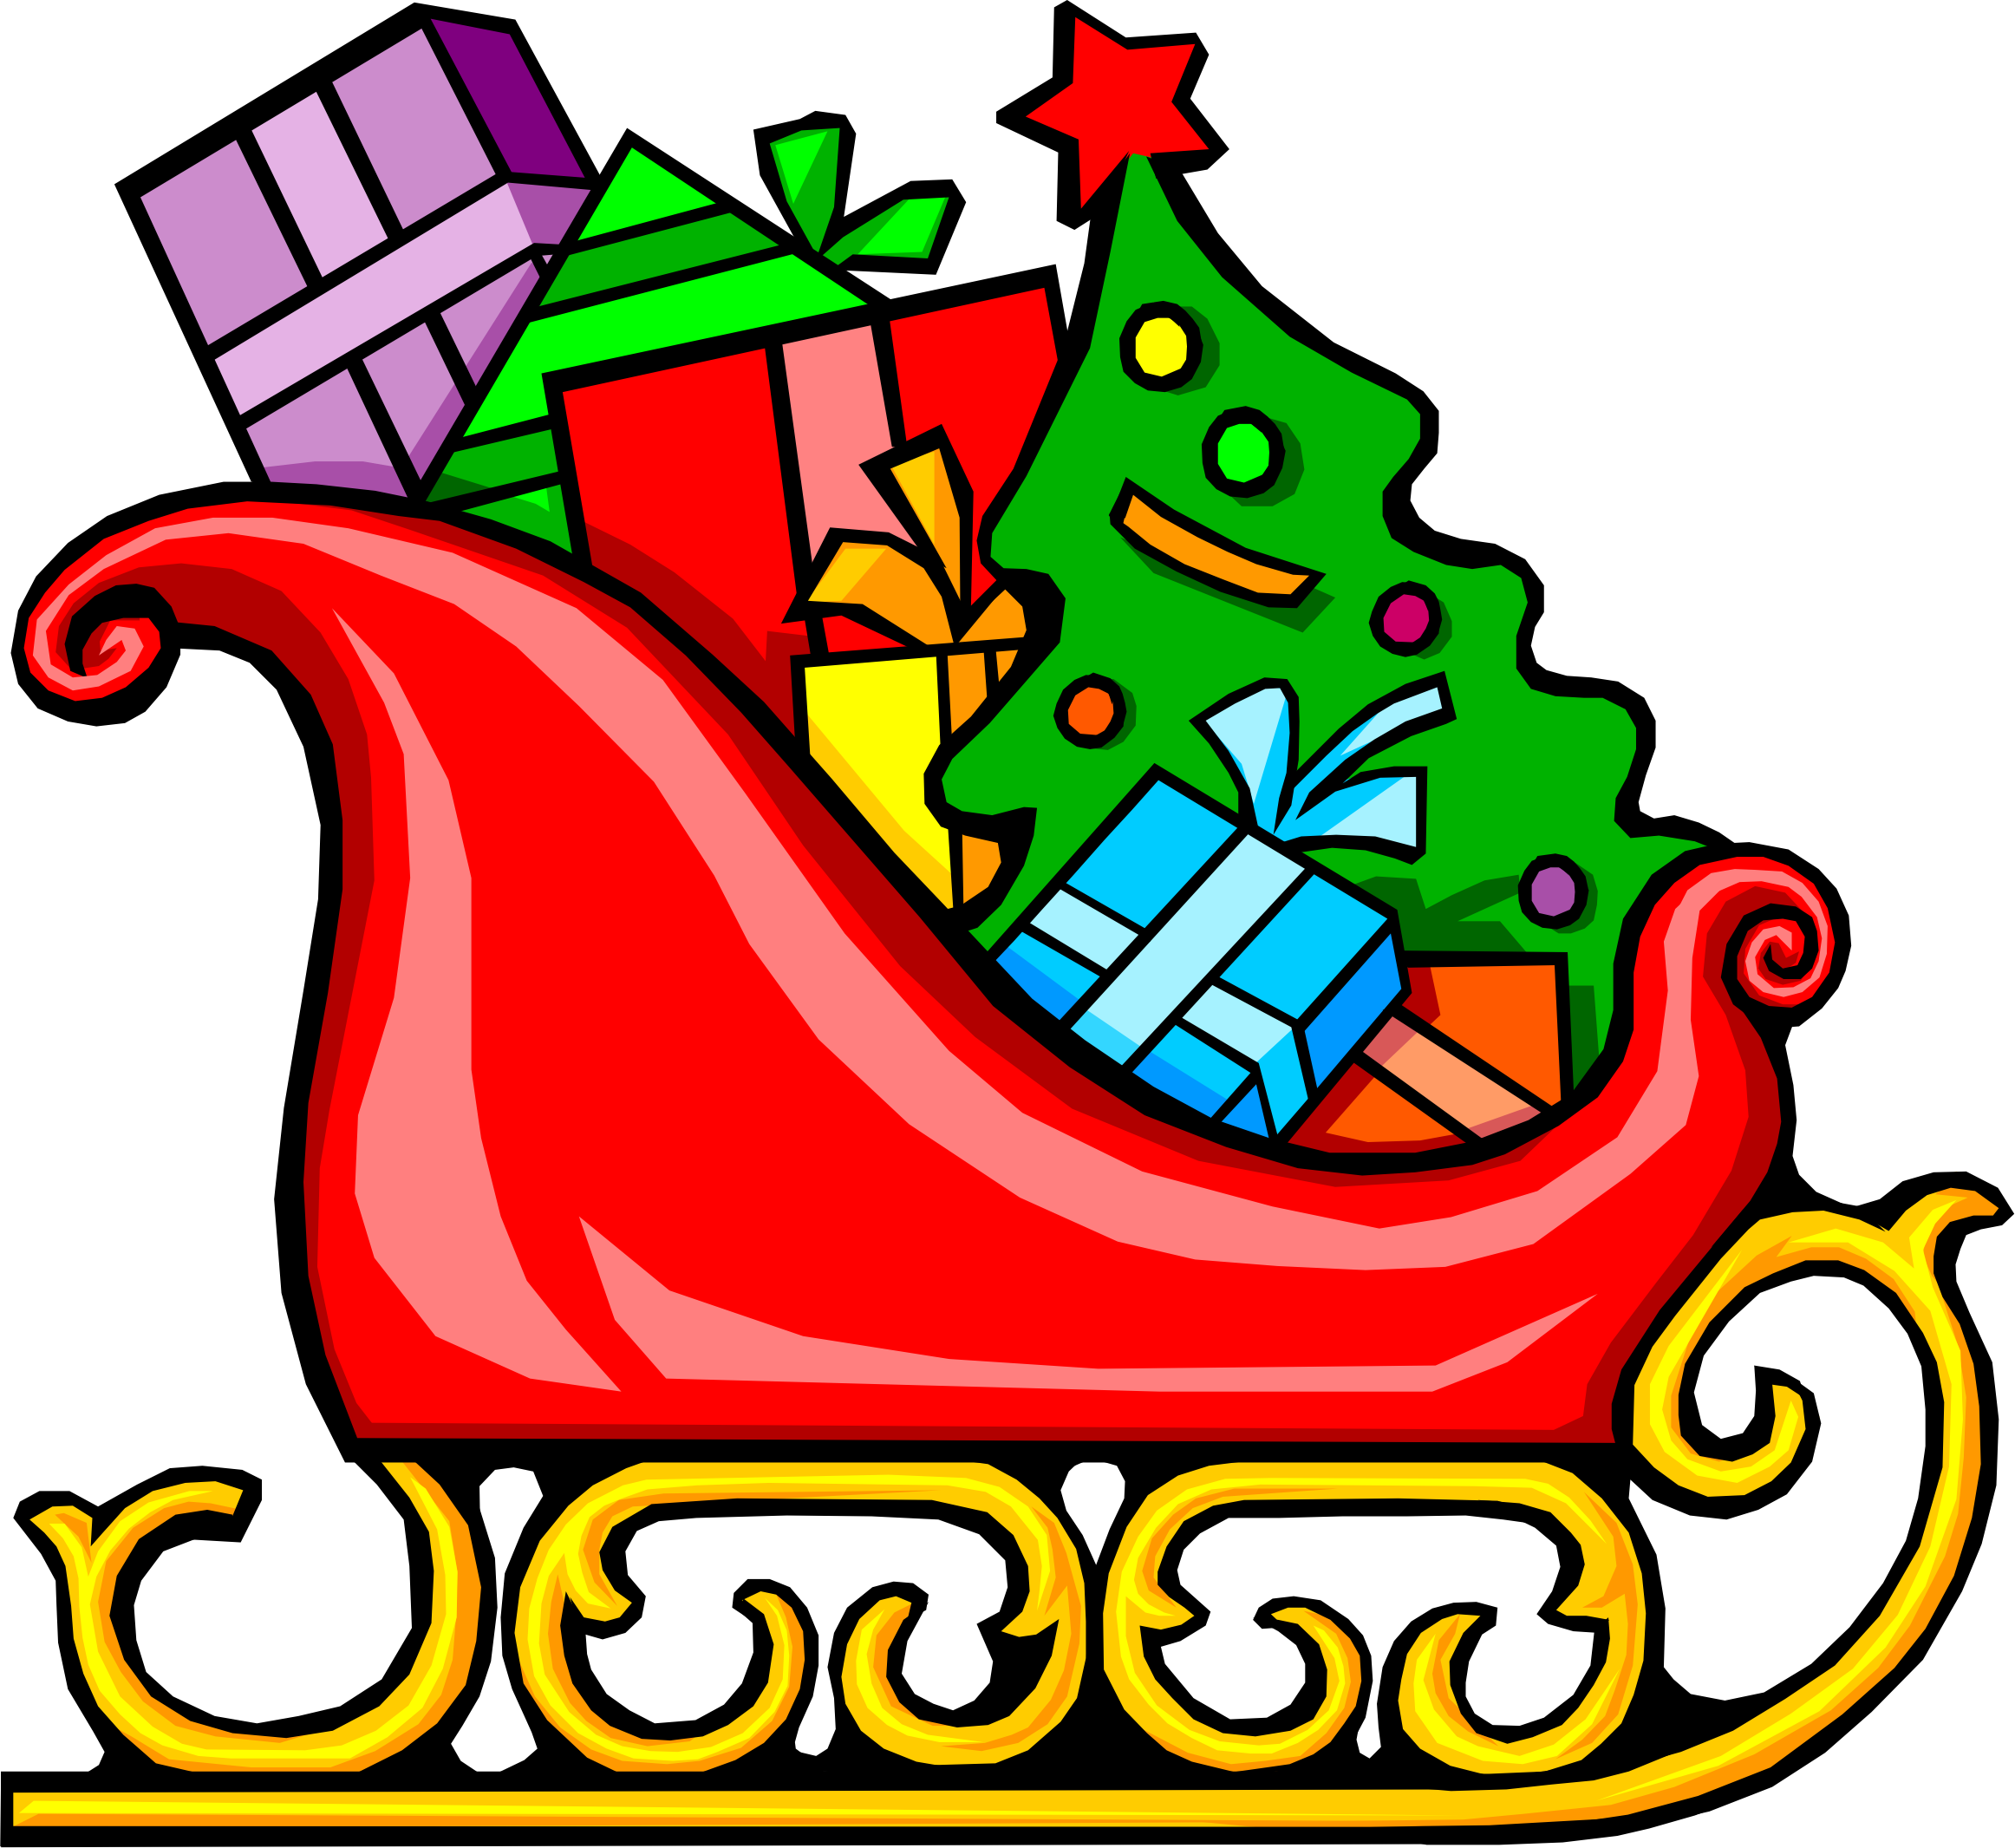 With presents big image. Sleigh clipart vector